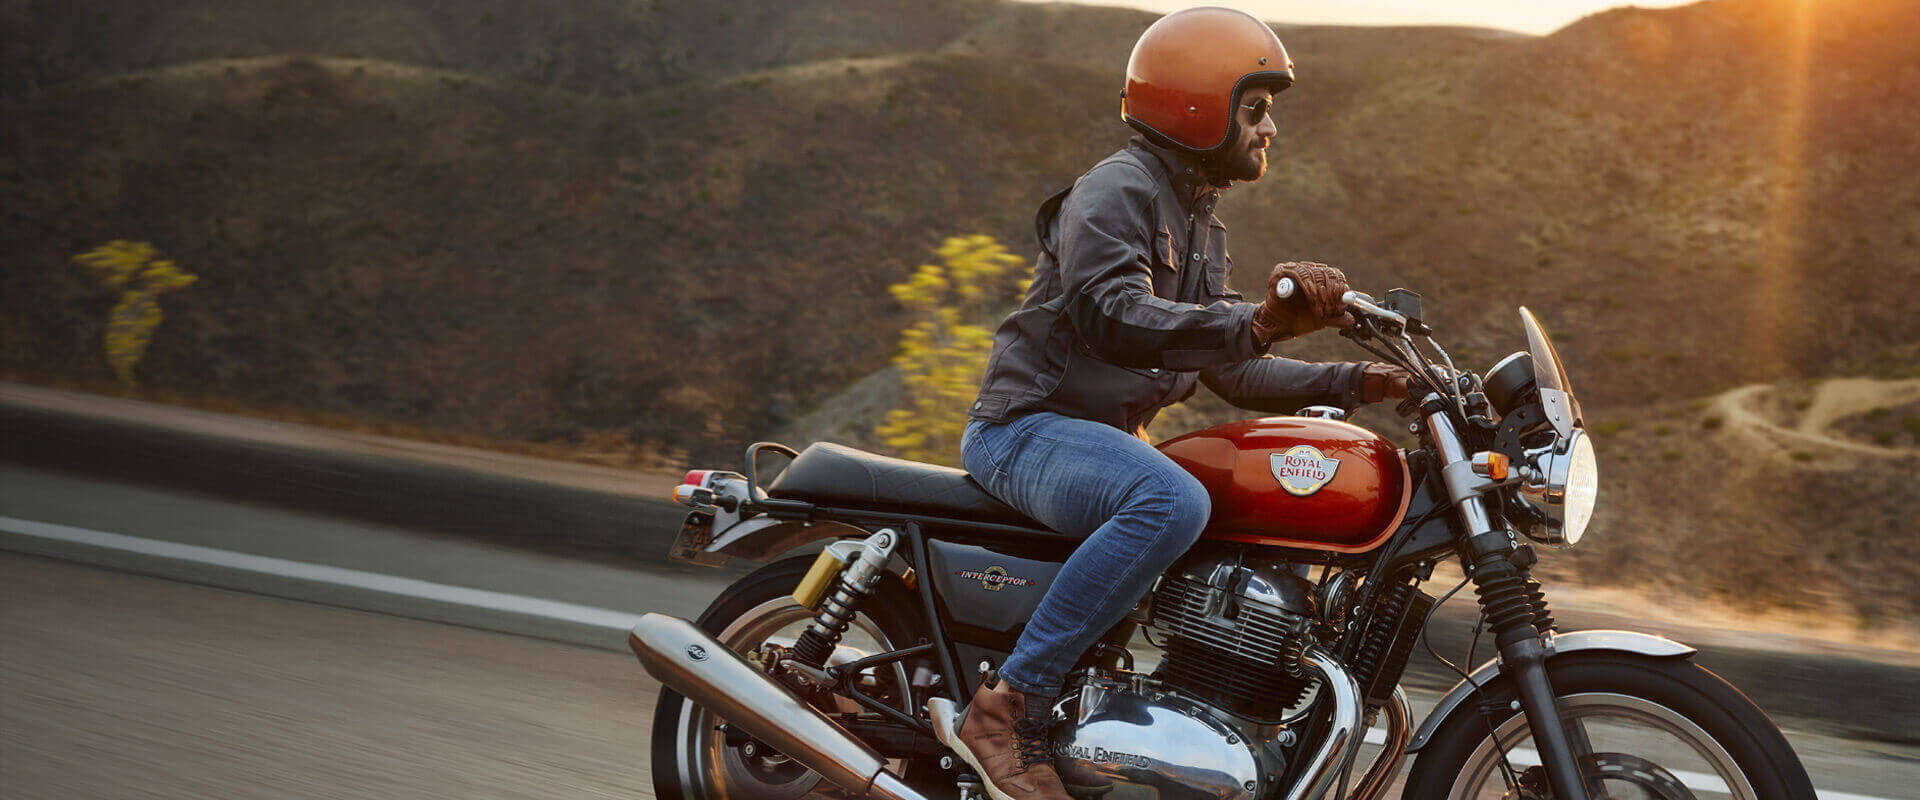 Interceptor 650 Colours Specifications Reviews Gallery Royal Enfield